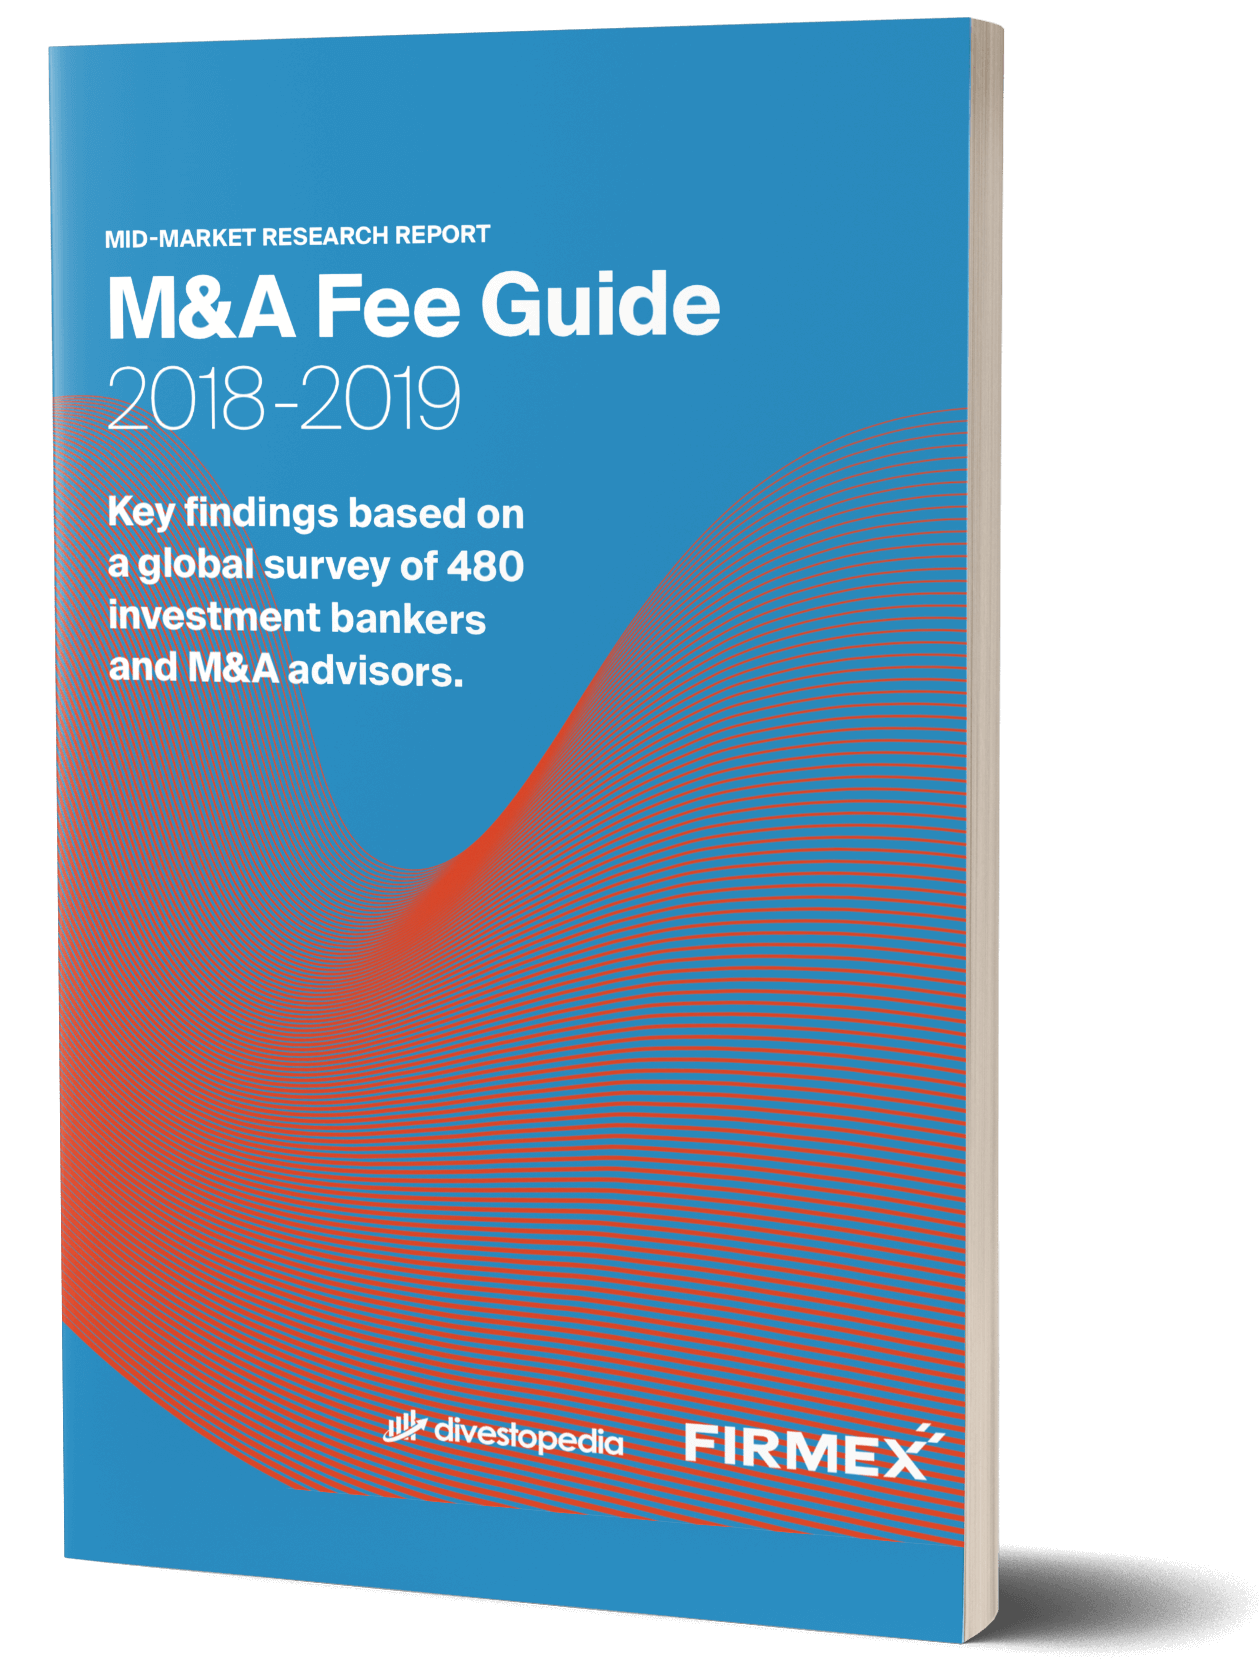 M&A fee guide 2018-2019